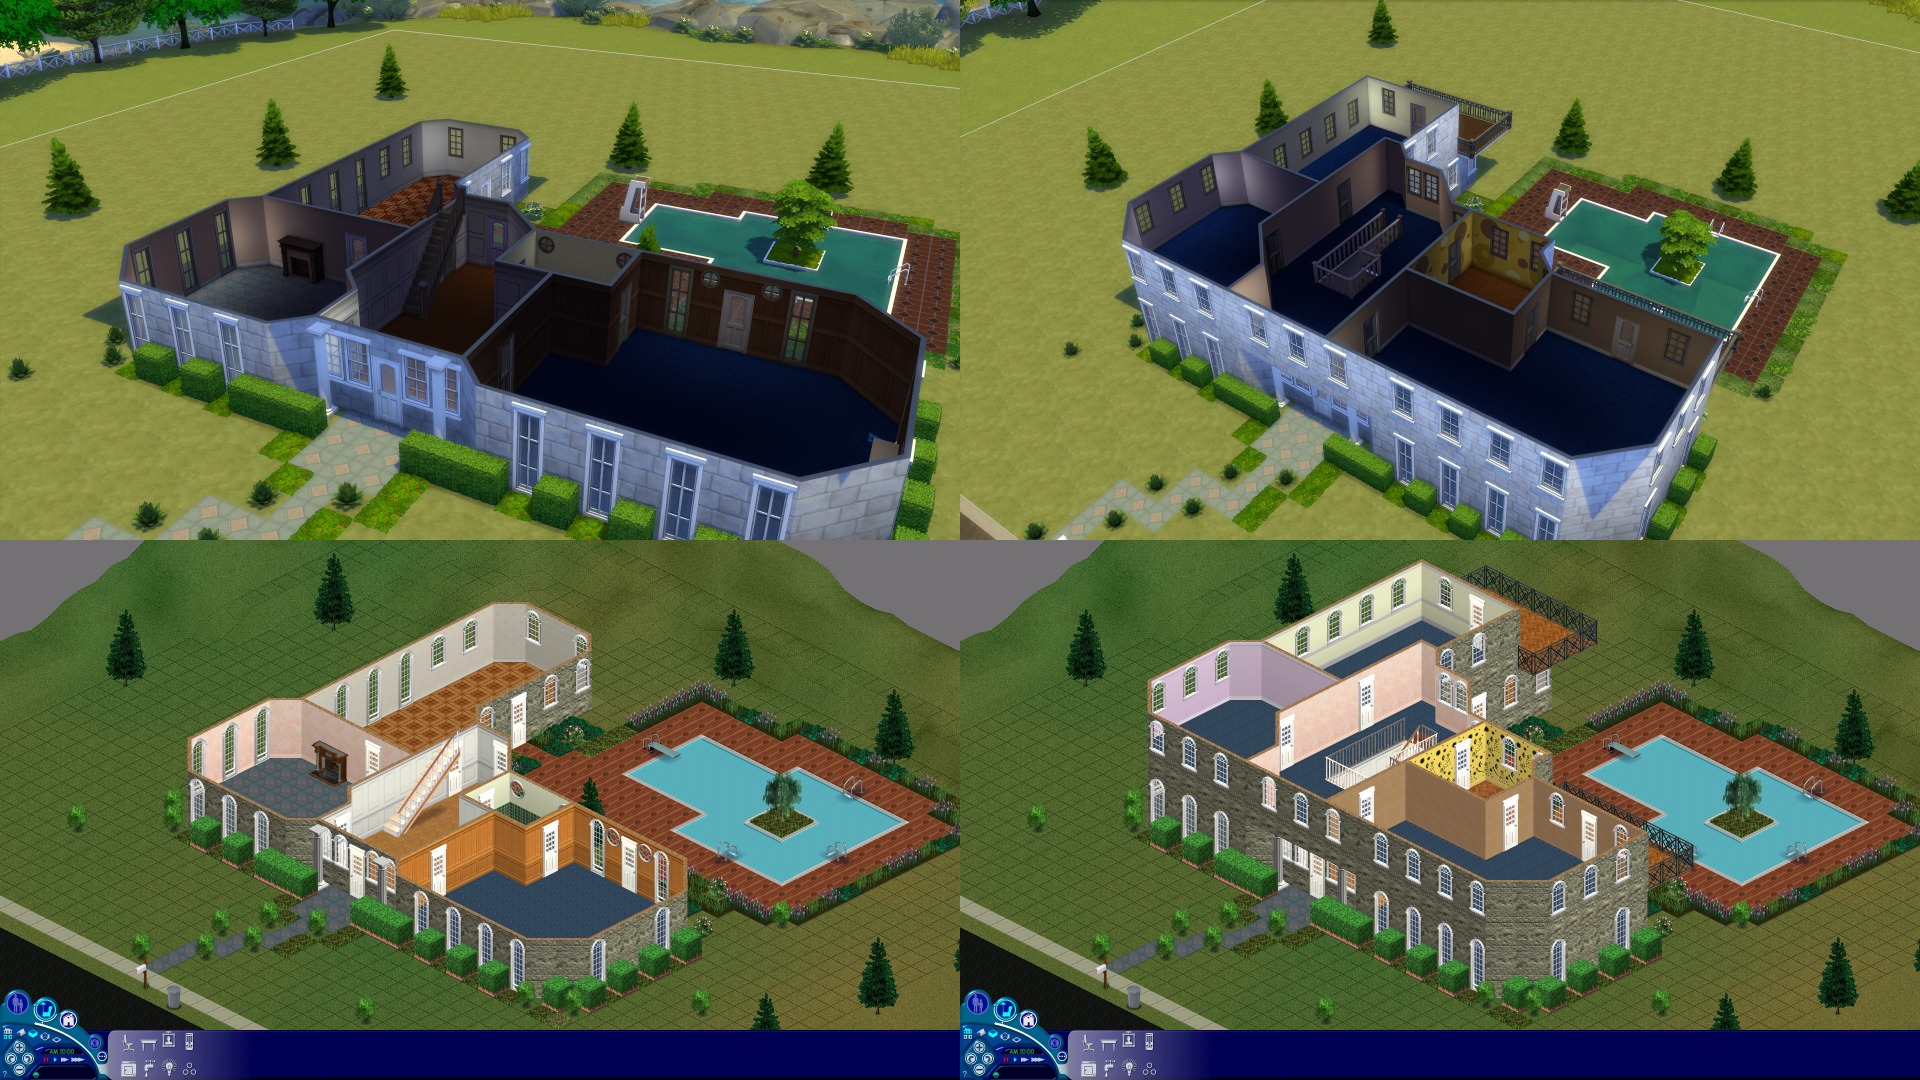 Mod The Sims - The Sims 1 Mansion (2 Sim Lane) for The Sims 4